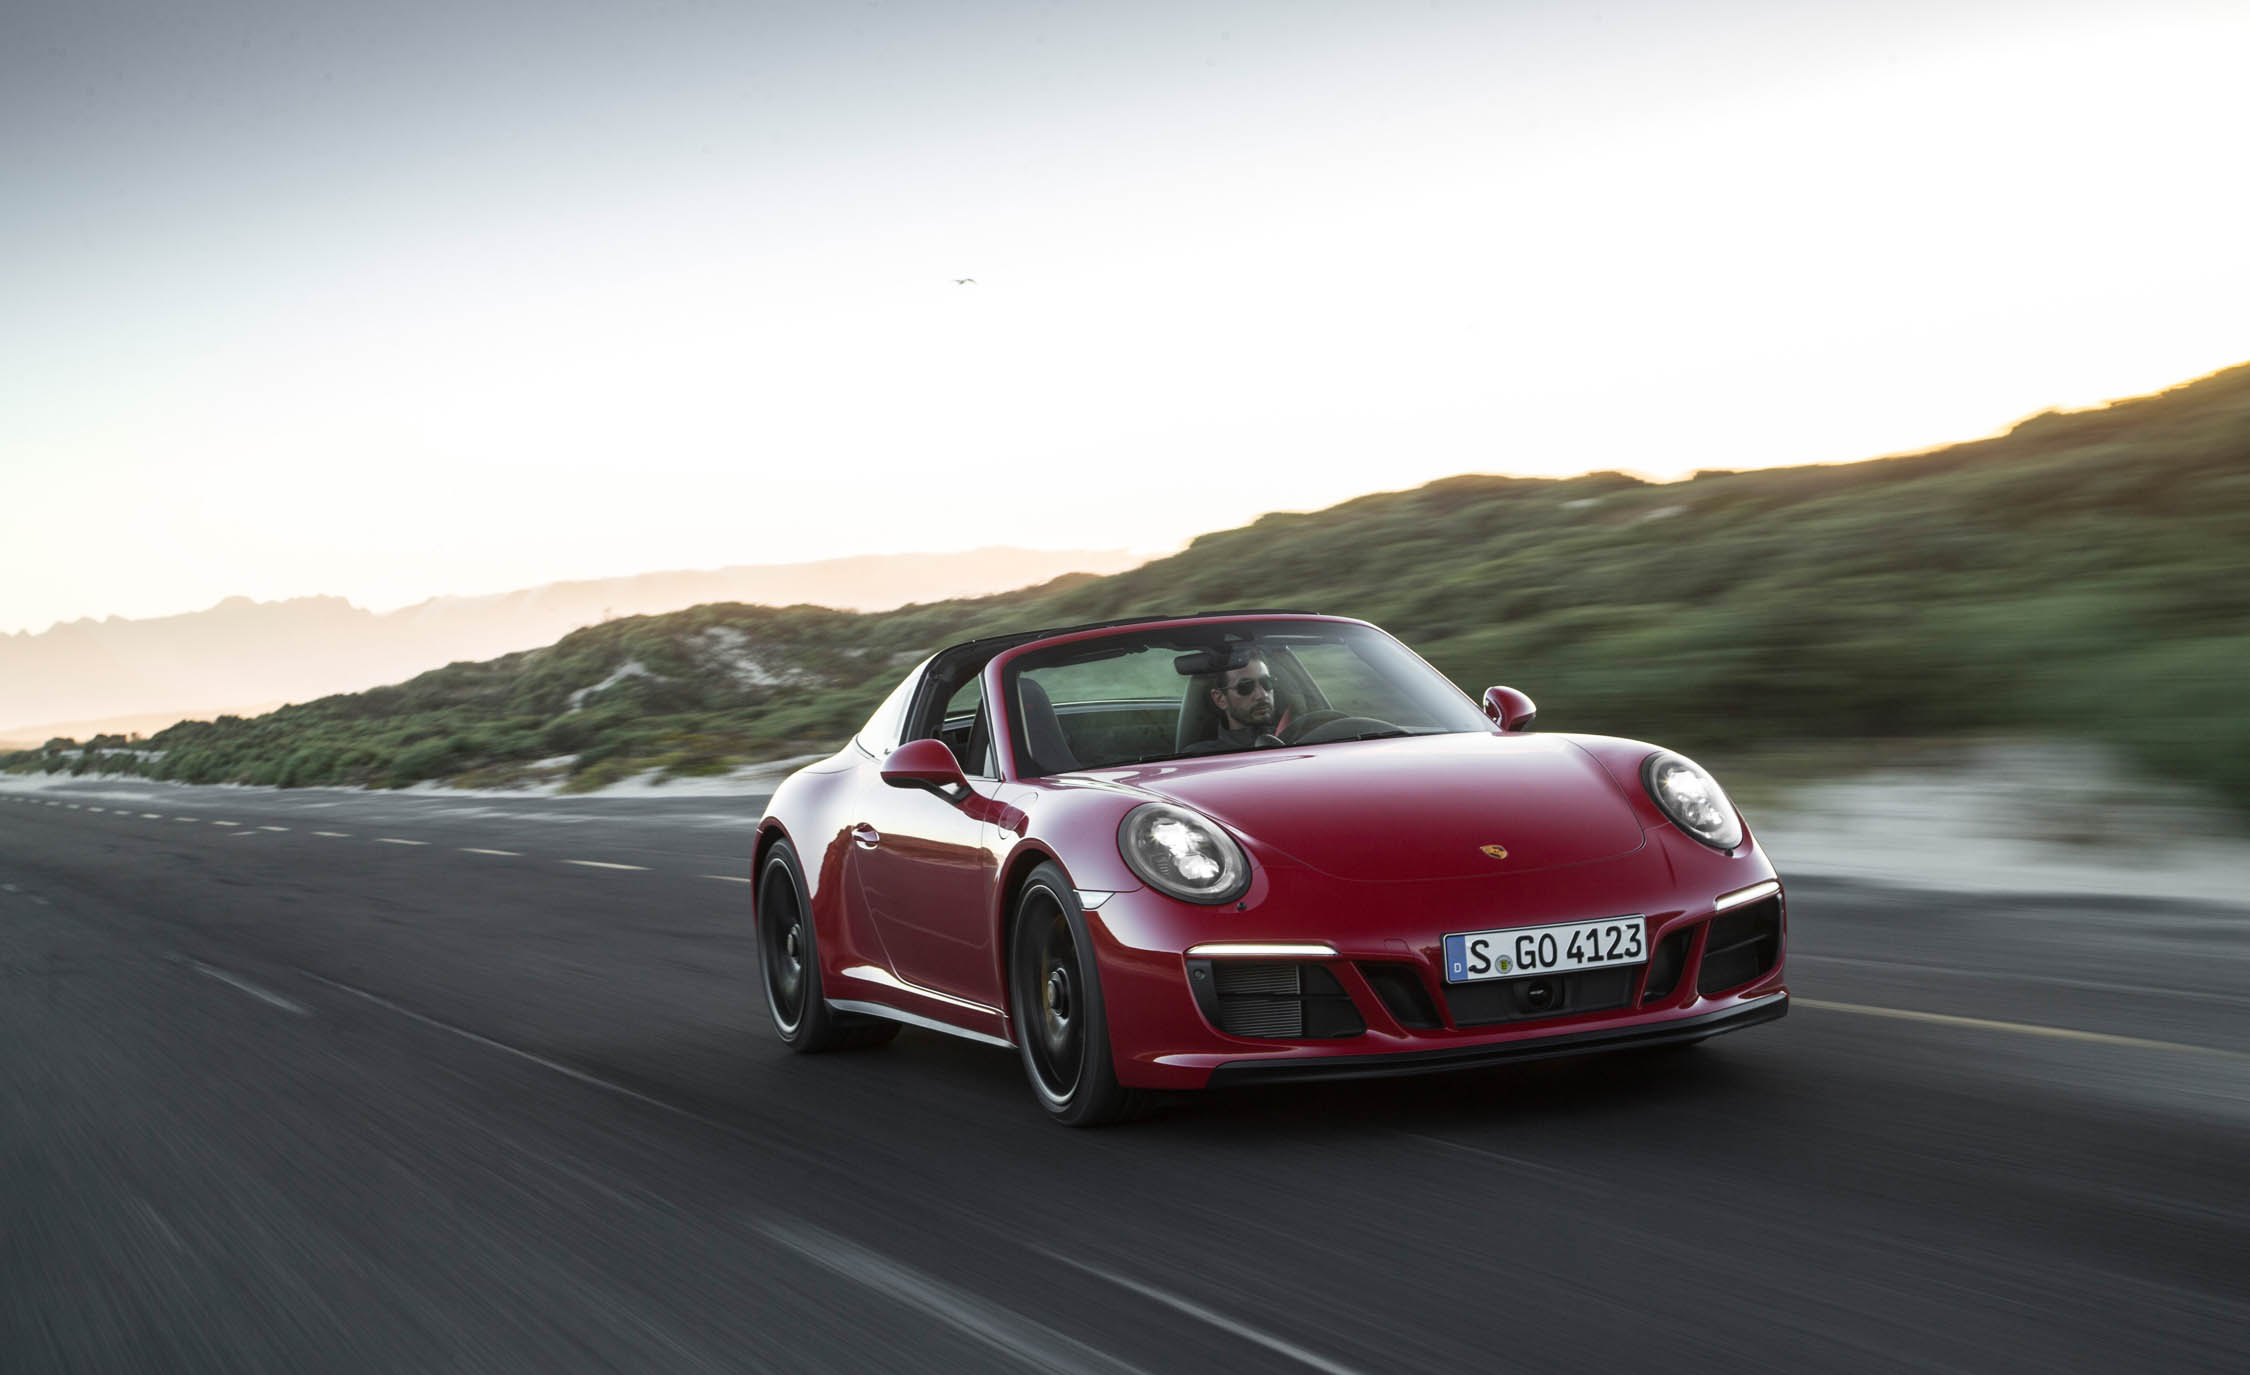 2017 Porsche 911 Targa 4 GTS Red (Photo 75 of 97)